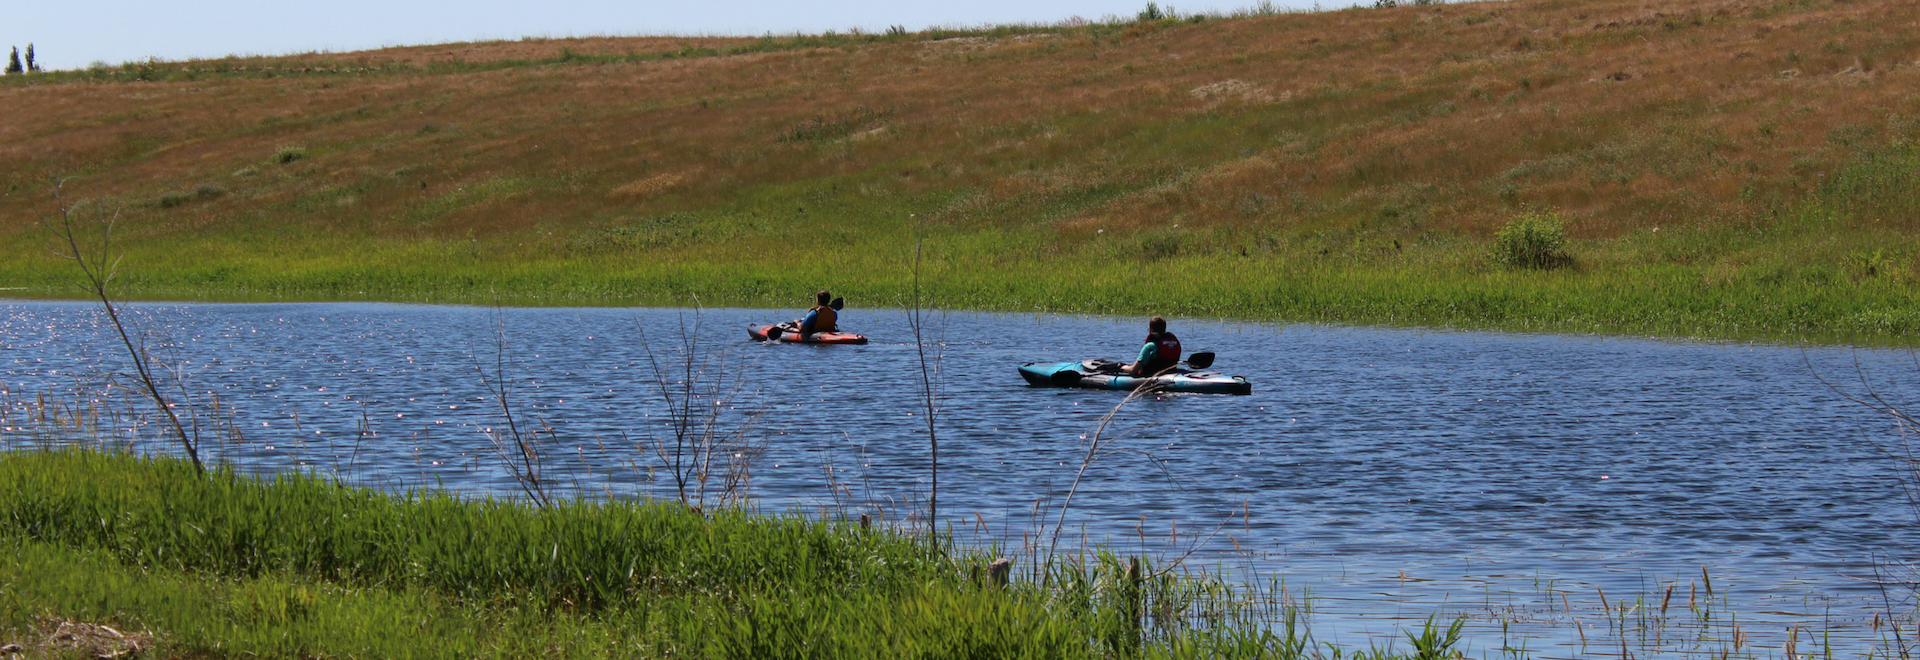 Kayaks on Trout Pond- Wide